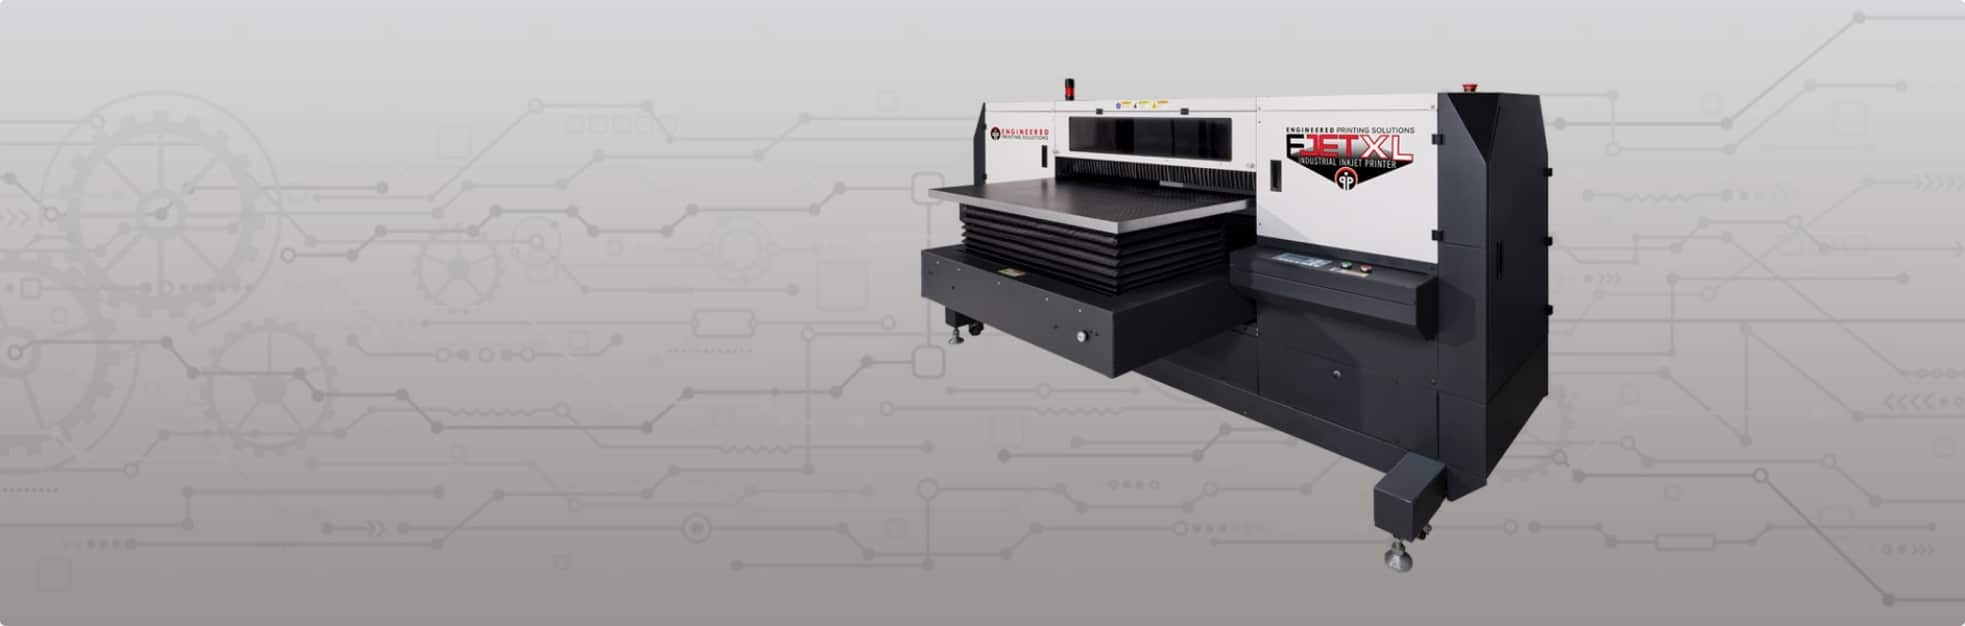 FJetXL Industrial Inkjet Printer